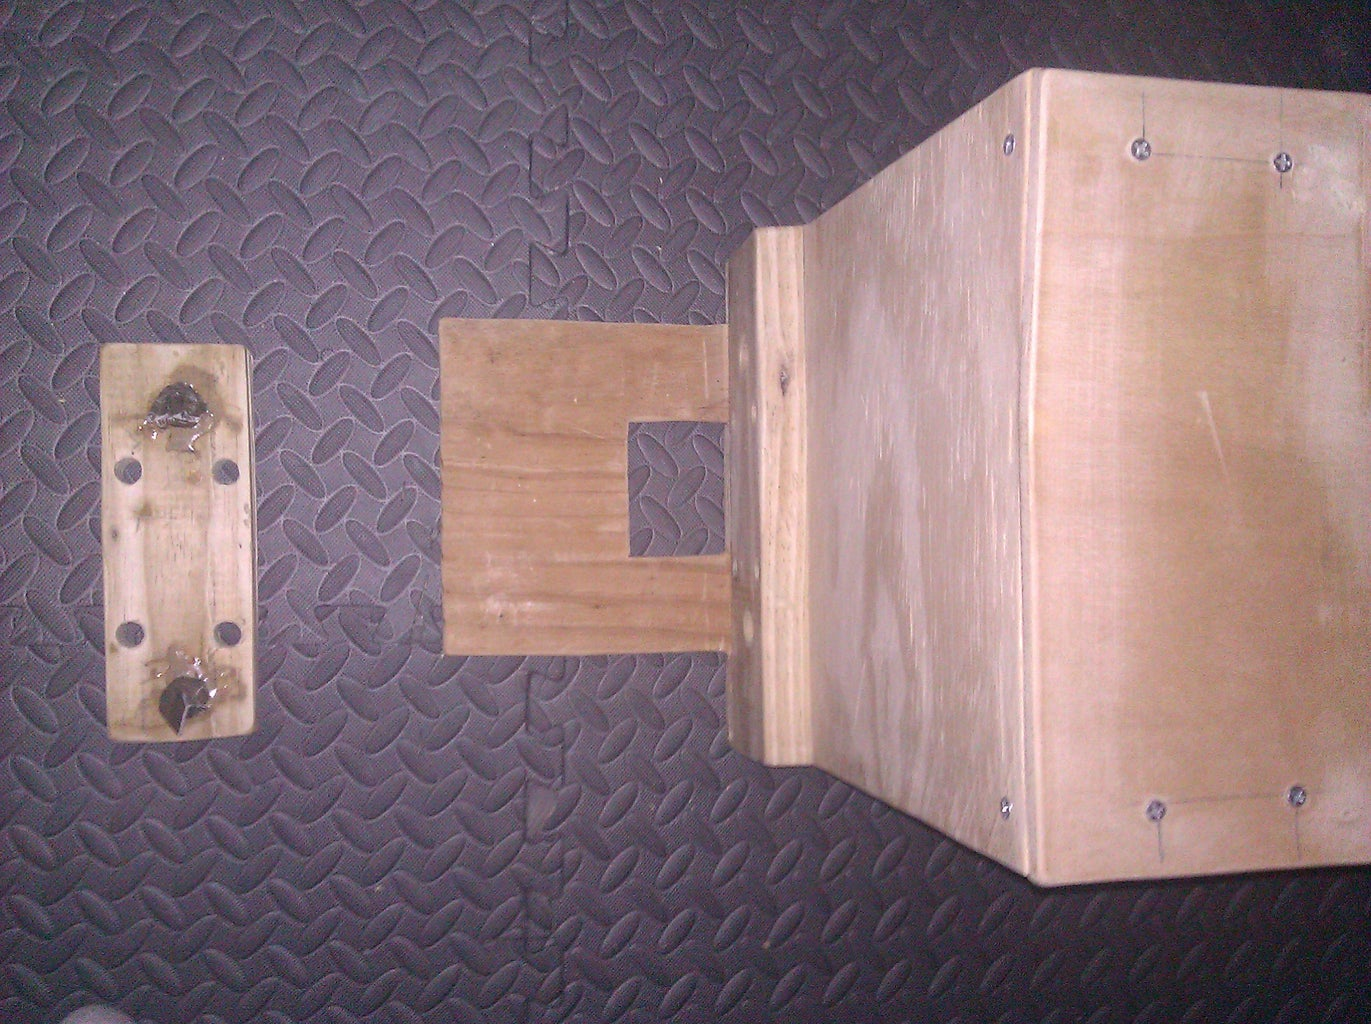 Part 5: Sanding and Painting the Machine